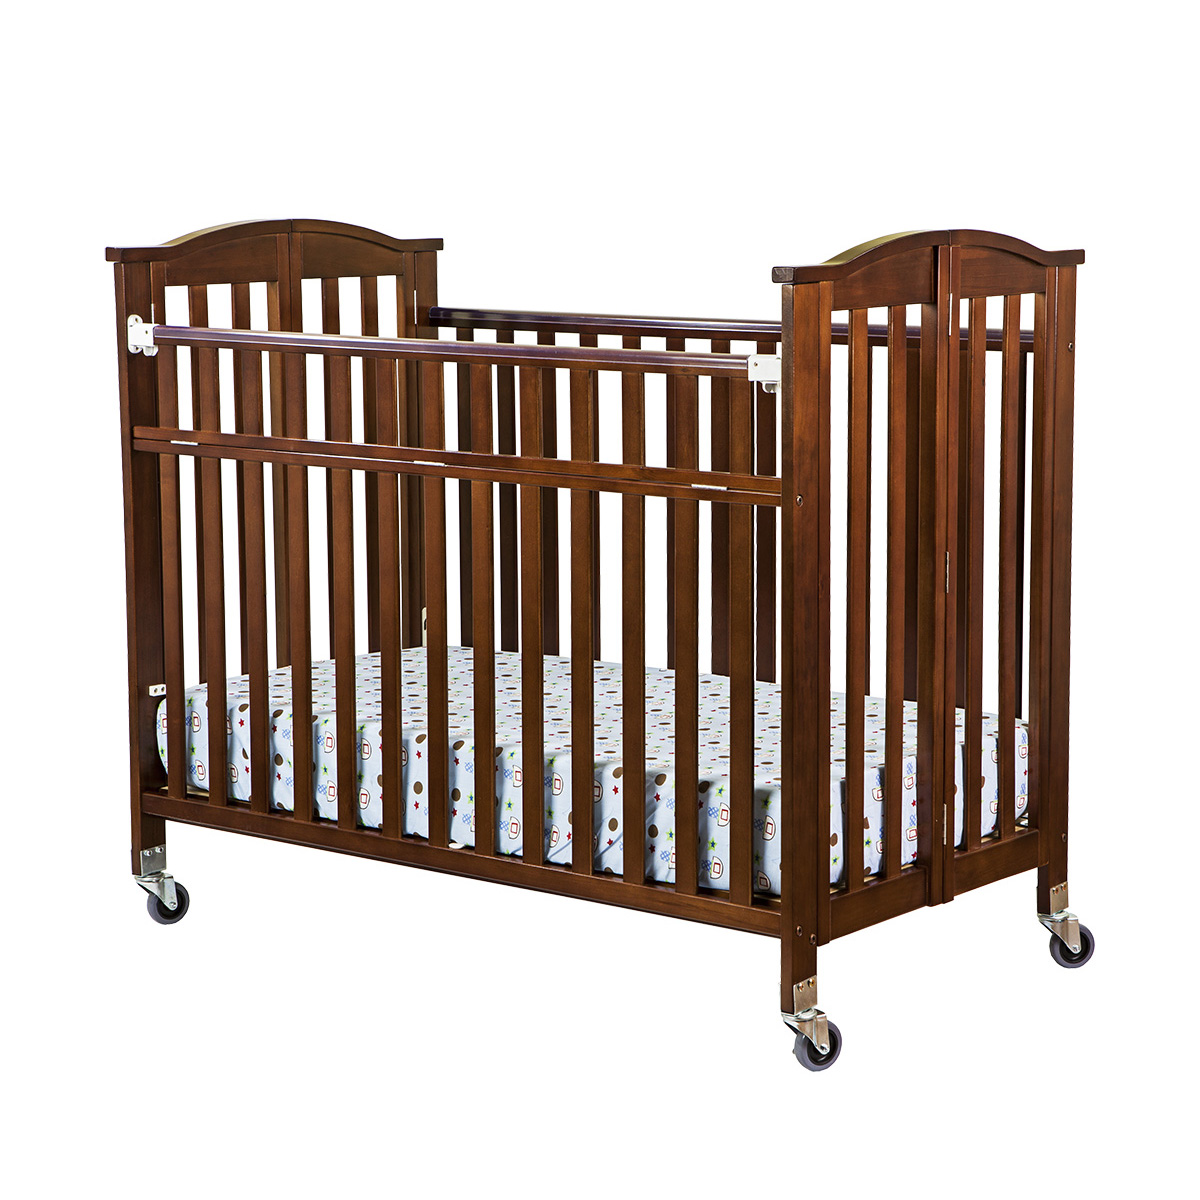 100 Circle Crib With Canopy Neutral Baby Bedding Gender